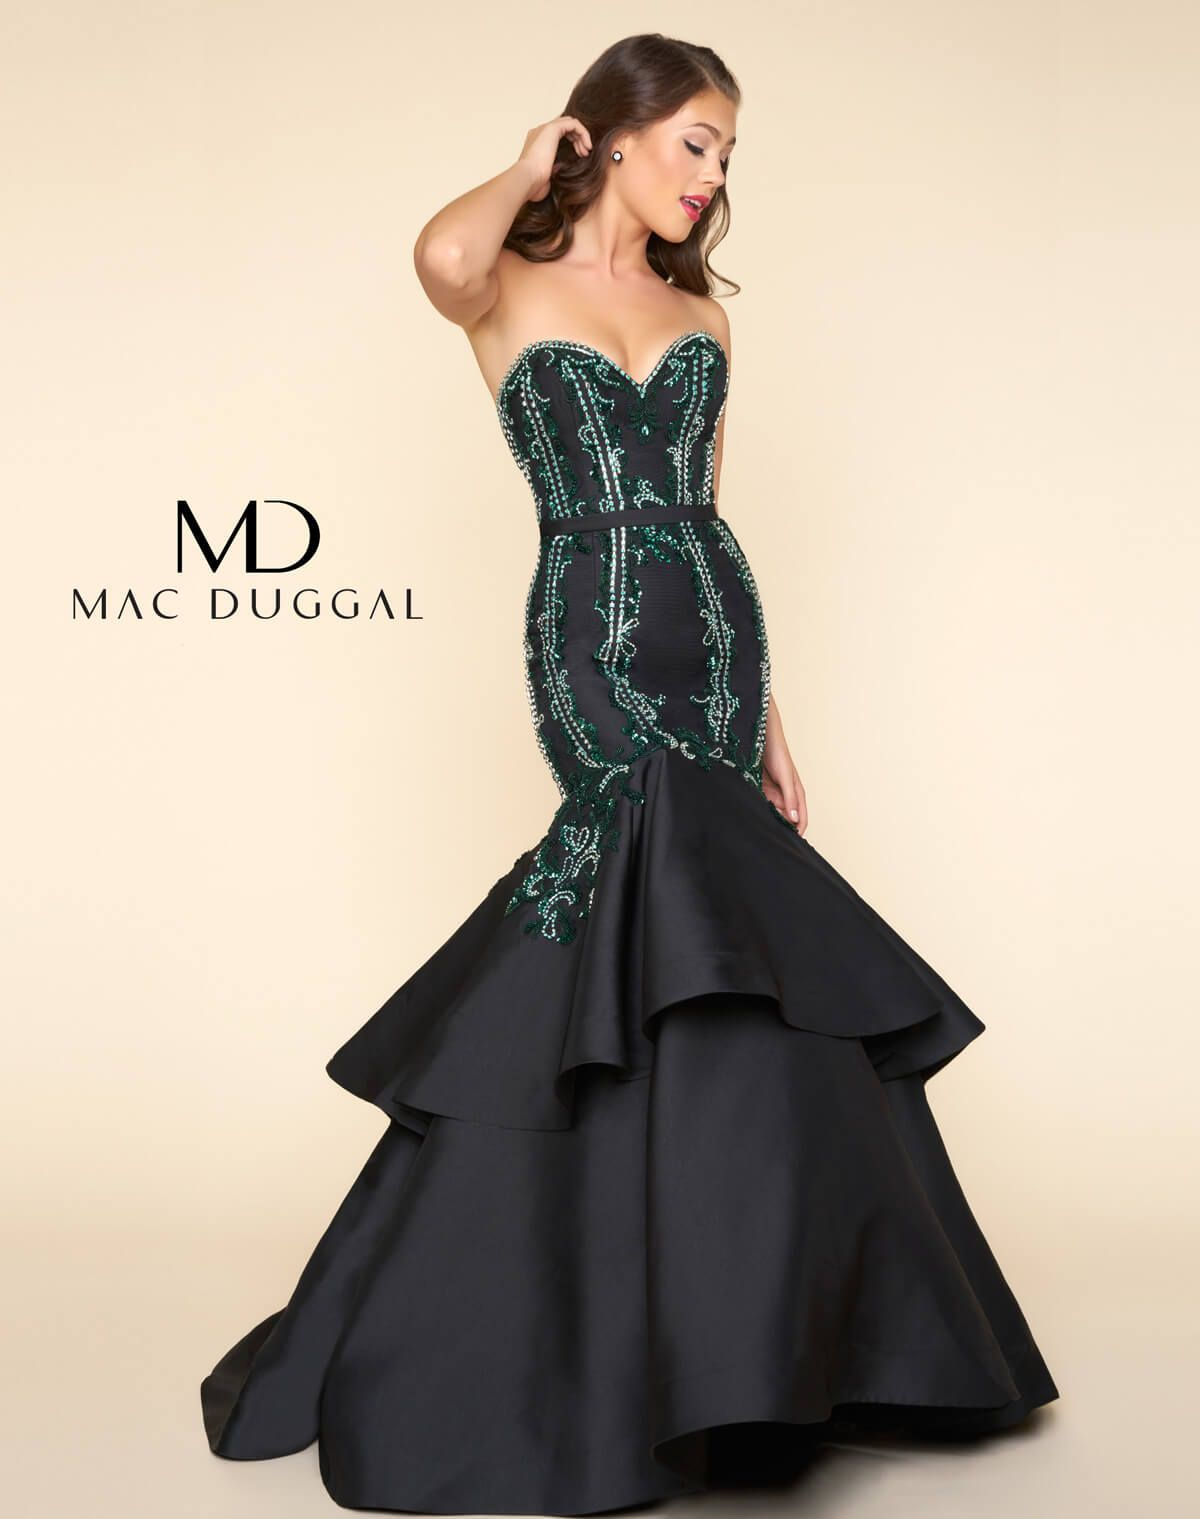 Strapless sweetheart neckline mermaid prom dress with pleated